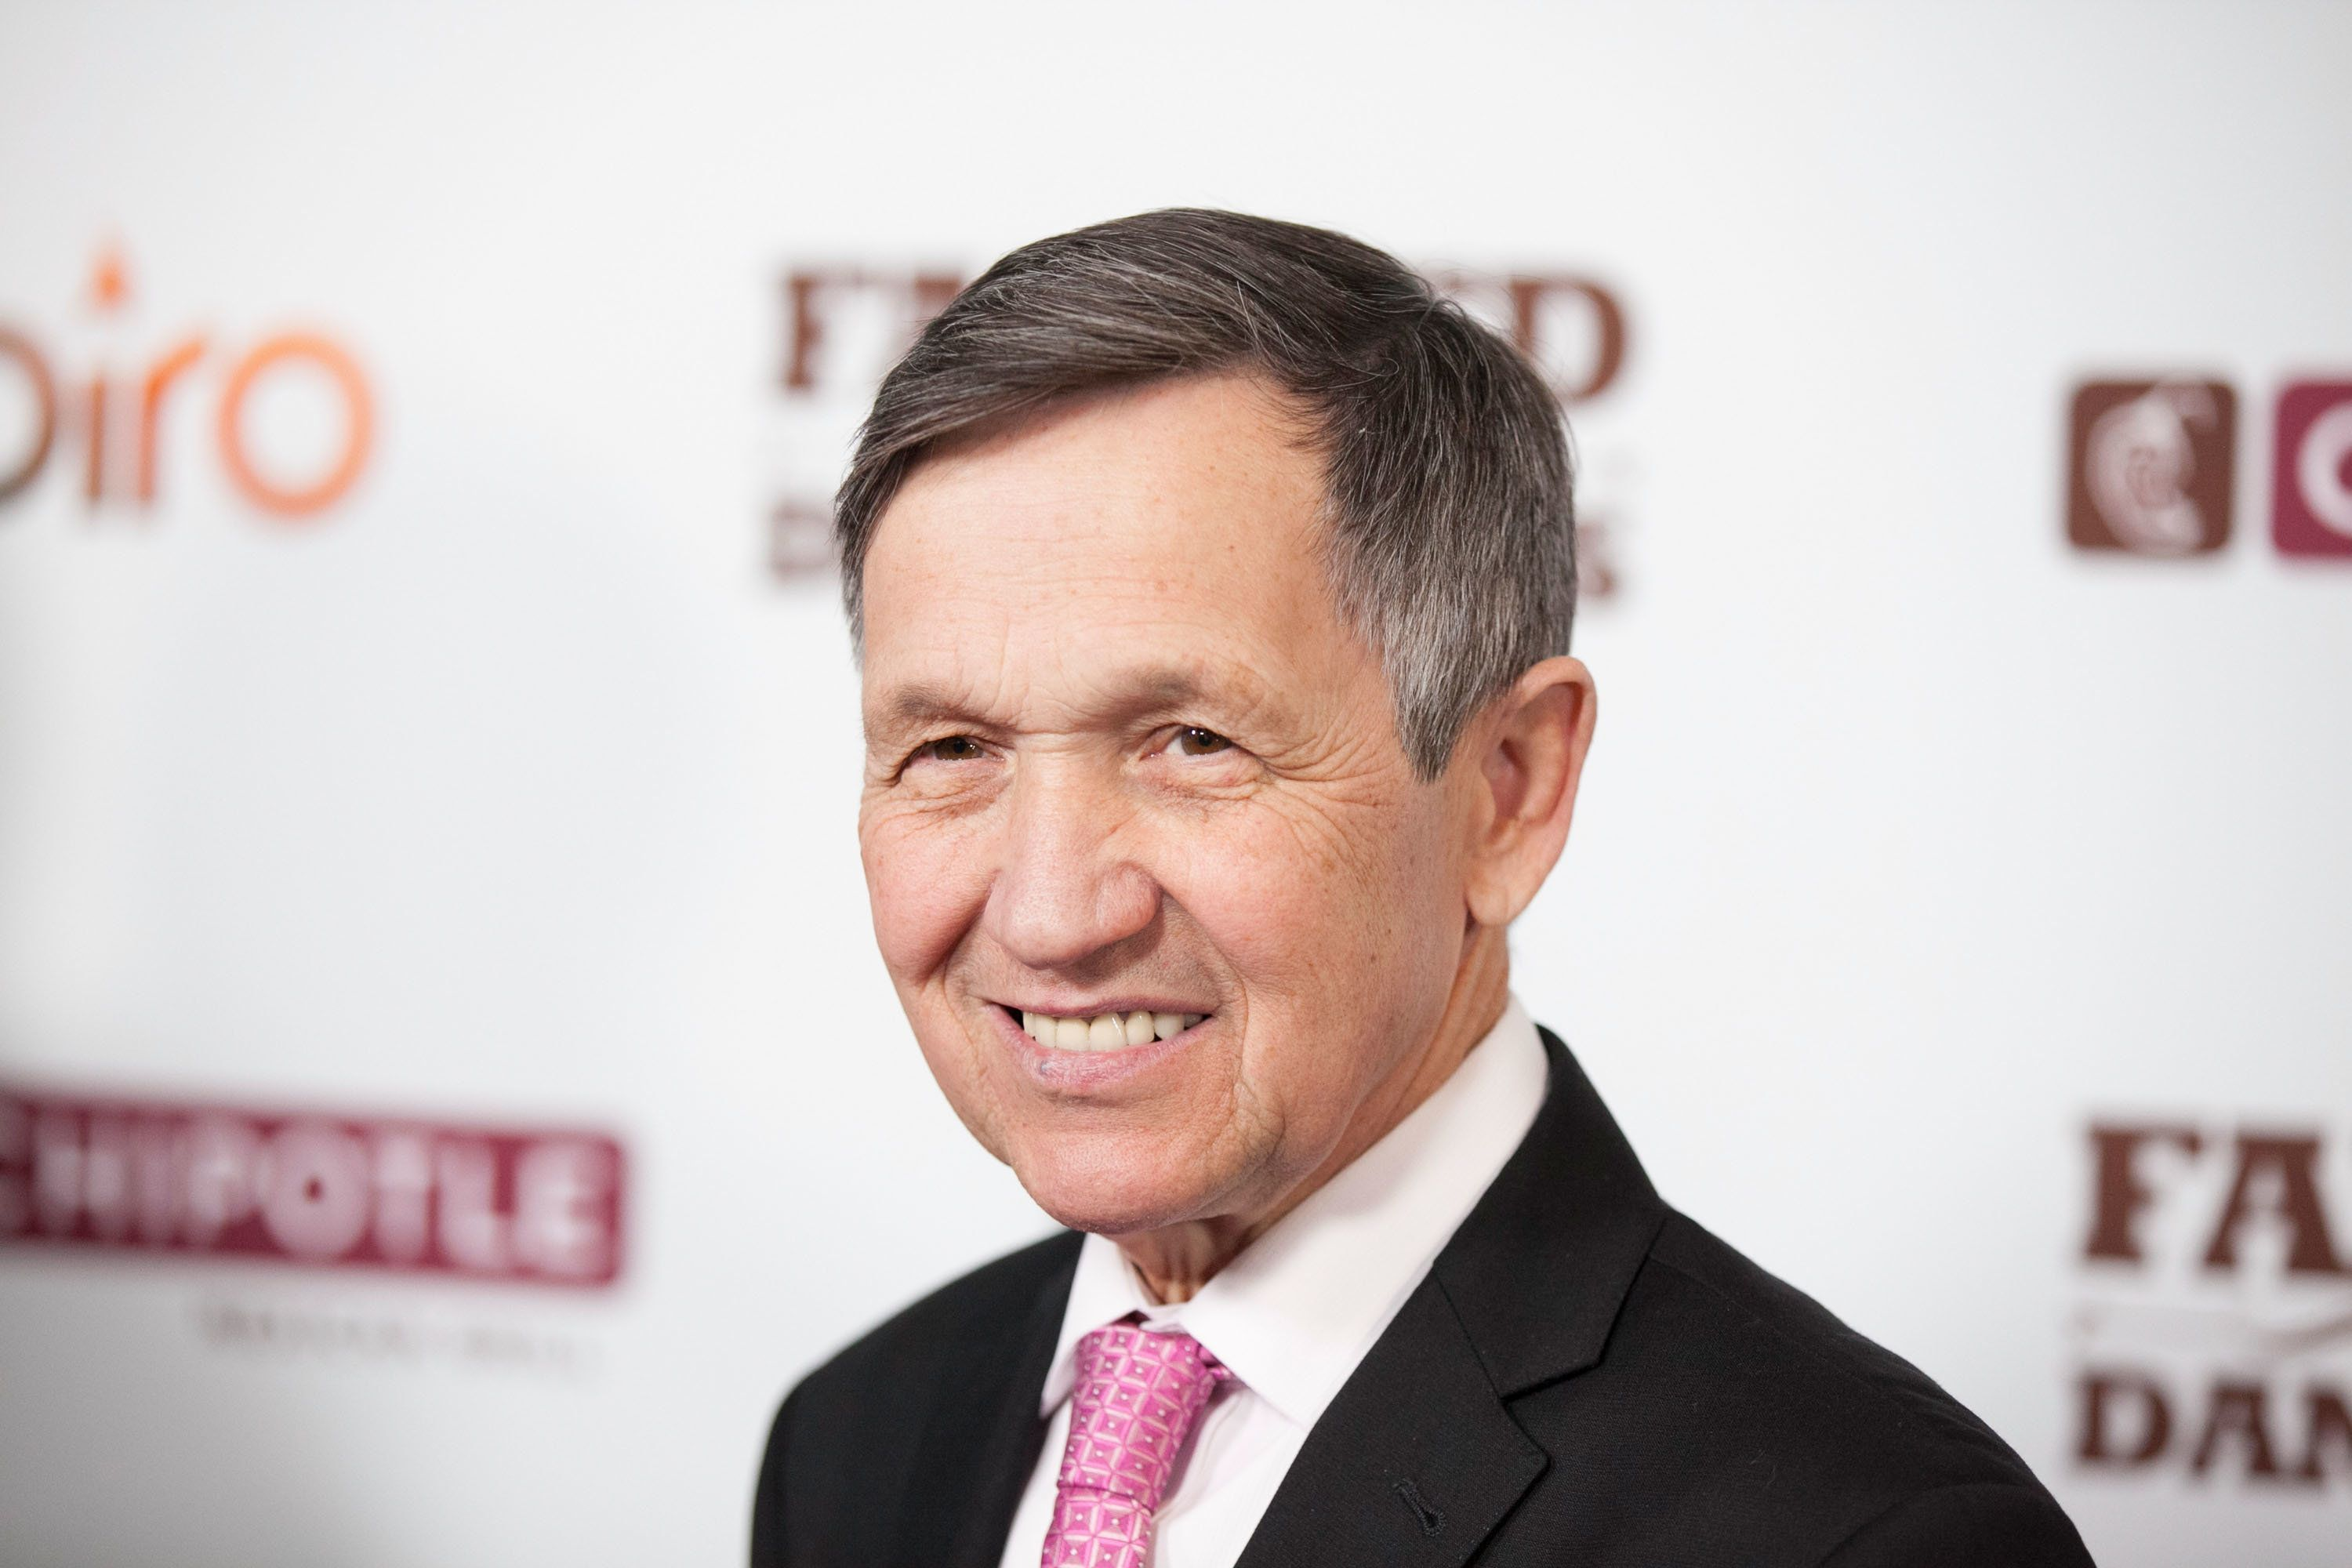 Dennis Kucinich enters crowded race for OH governor